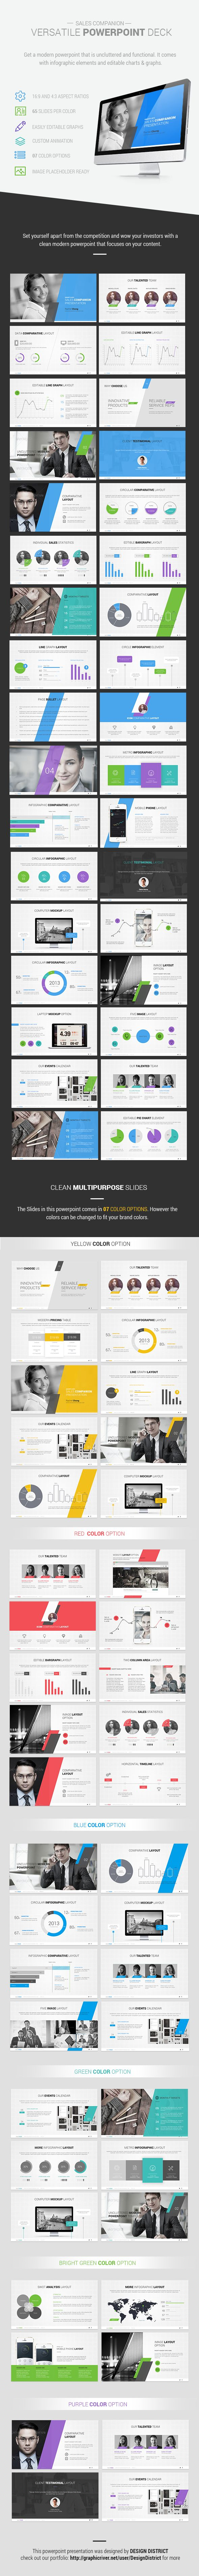 Accentuate Modern Powerpoint  by Design District, via Behance